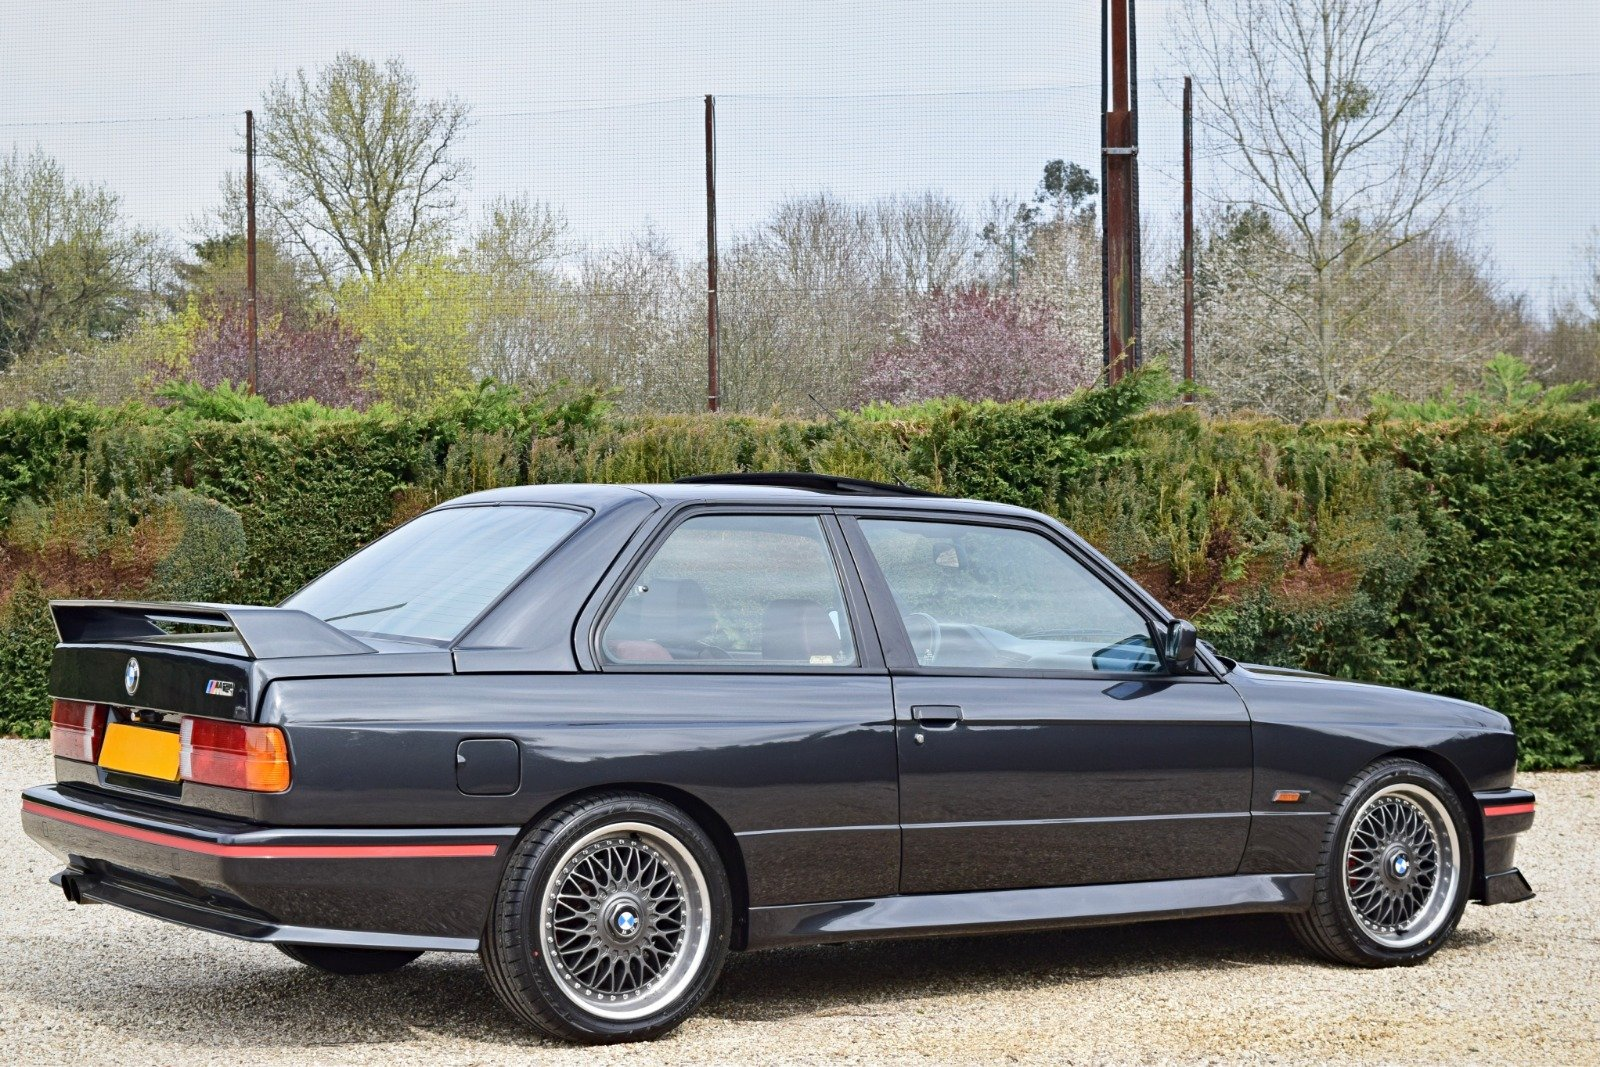 BMW M3 E30 2.3 PETROL MANUAL 1992/K BLACK For Sale (picture 5 of 6)